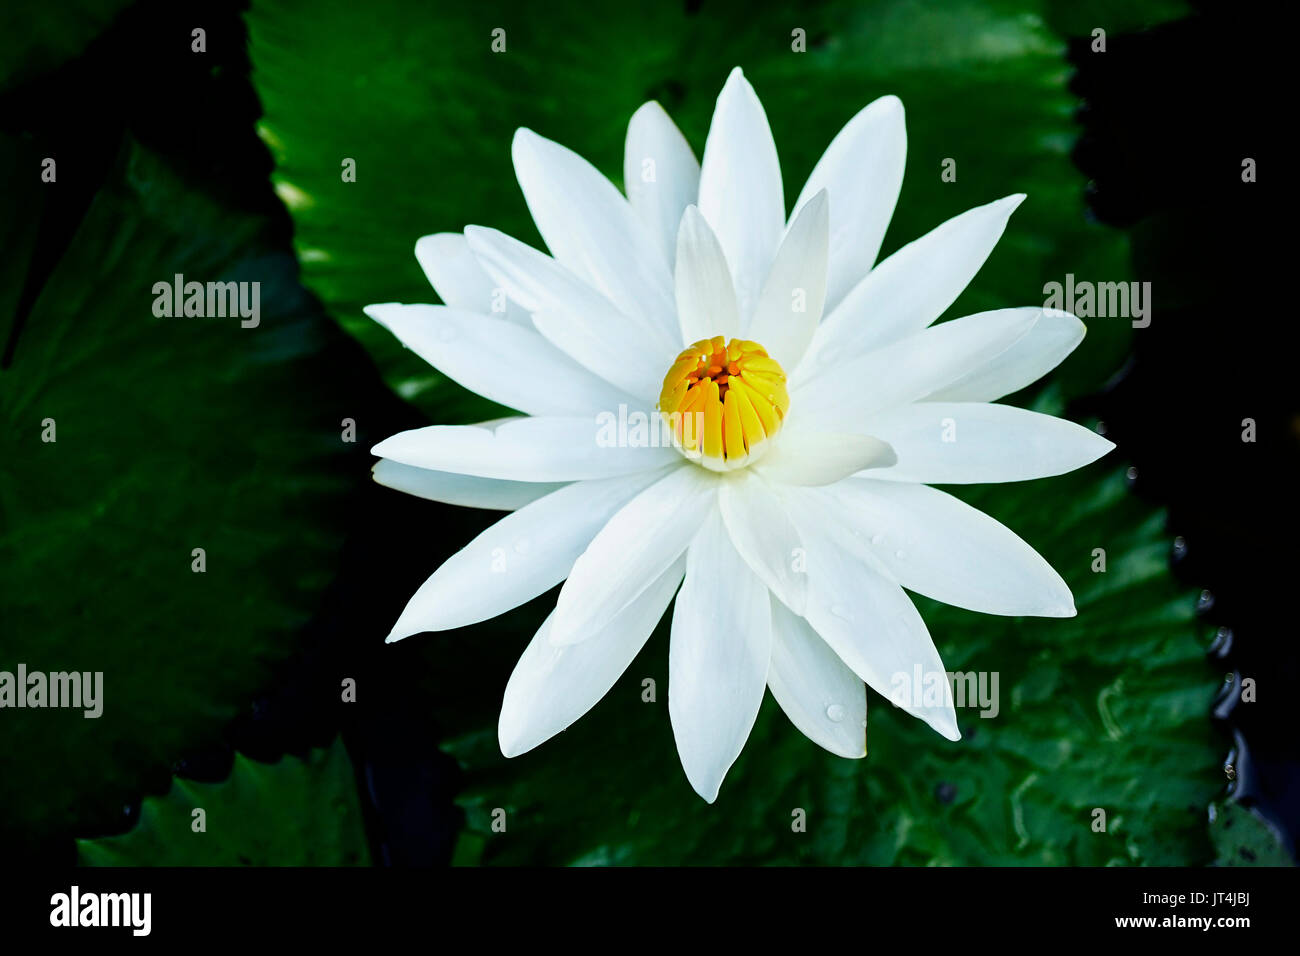 Close up of one open lotus flower with white petals and closed close up of one open lotus flower with white petals and closed yellow core in a dark lake with green leaves izmirmasajfo Gallery